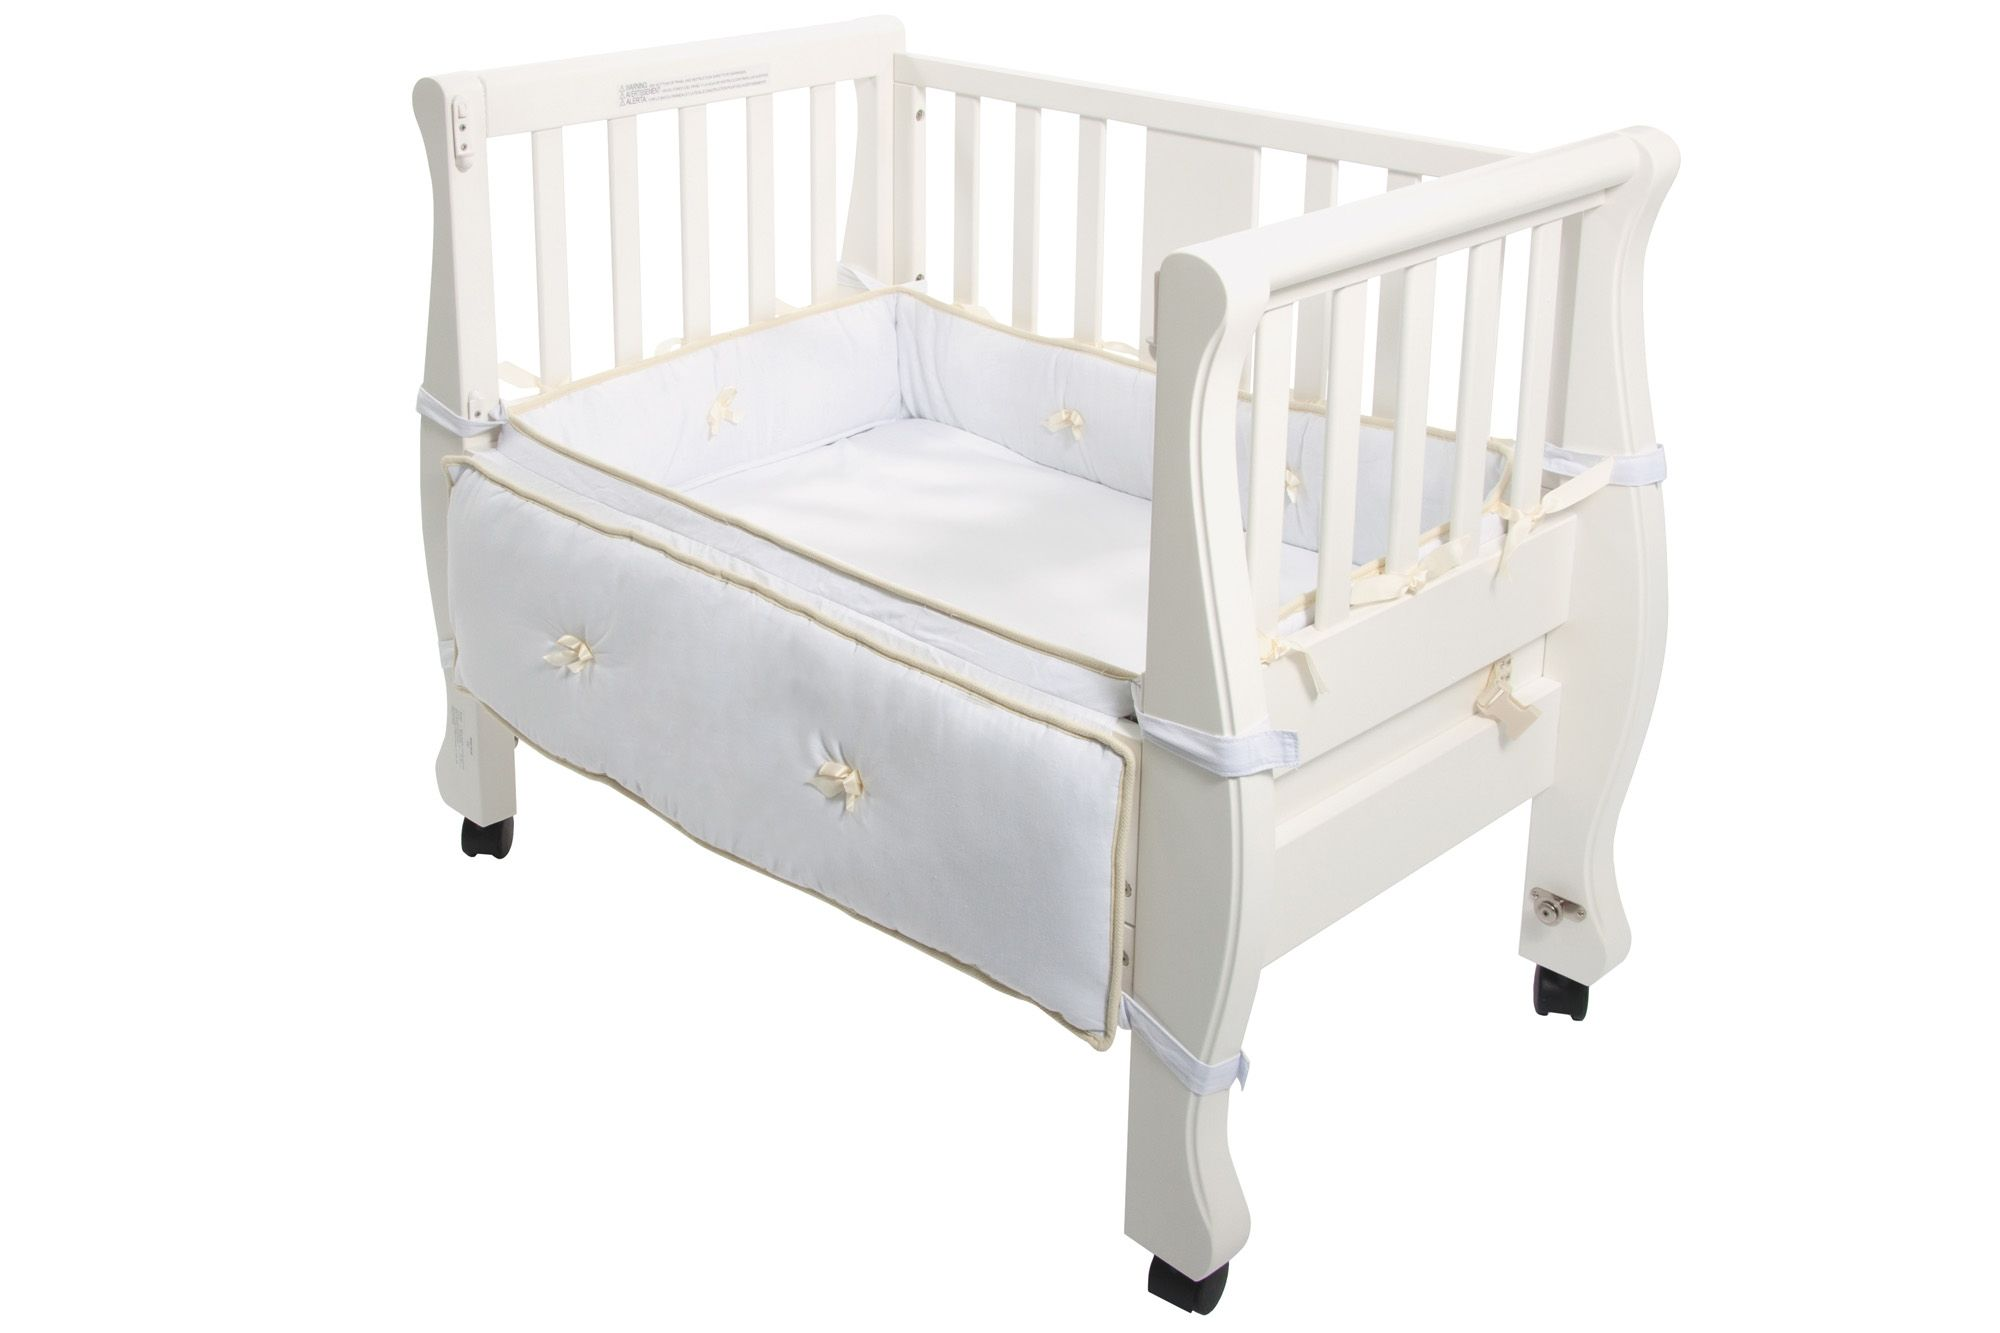 Baby bed co sleeper - Sleigh Bed Co Sleeper